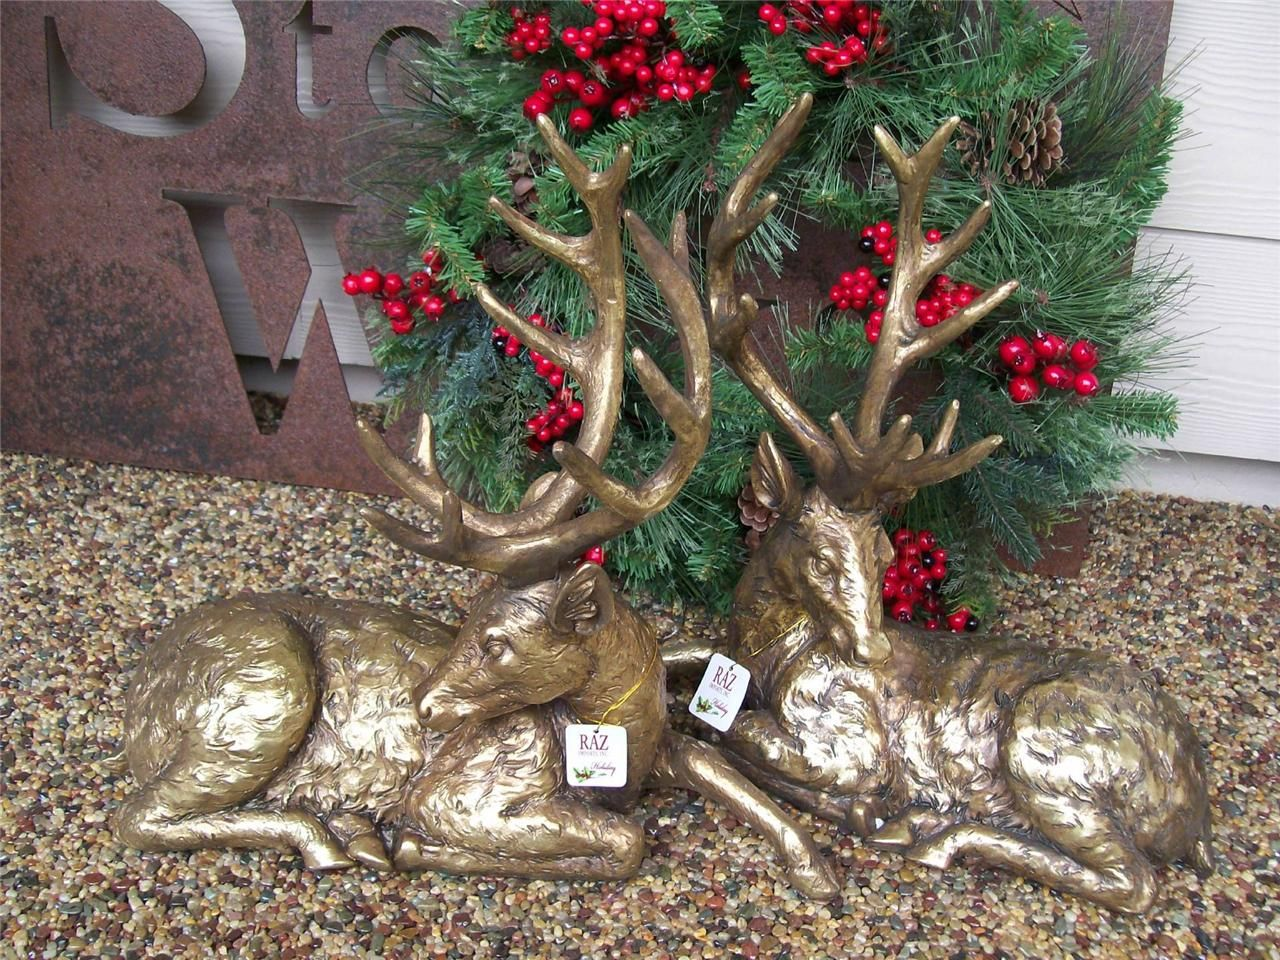 2 Nib Raz Large Gold Laying Reindeer Deer Christmas Hearth Table Decor Figures Hearth Decor Christmas Deer Decor Display